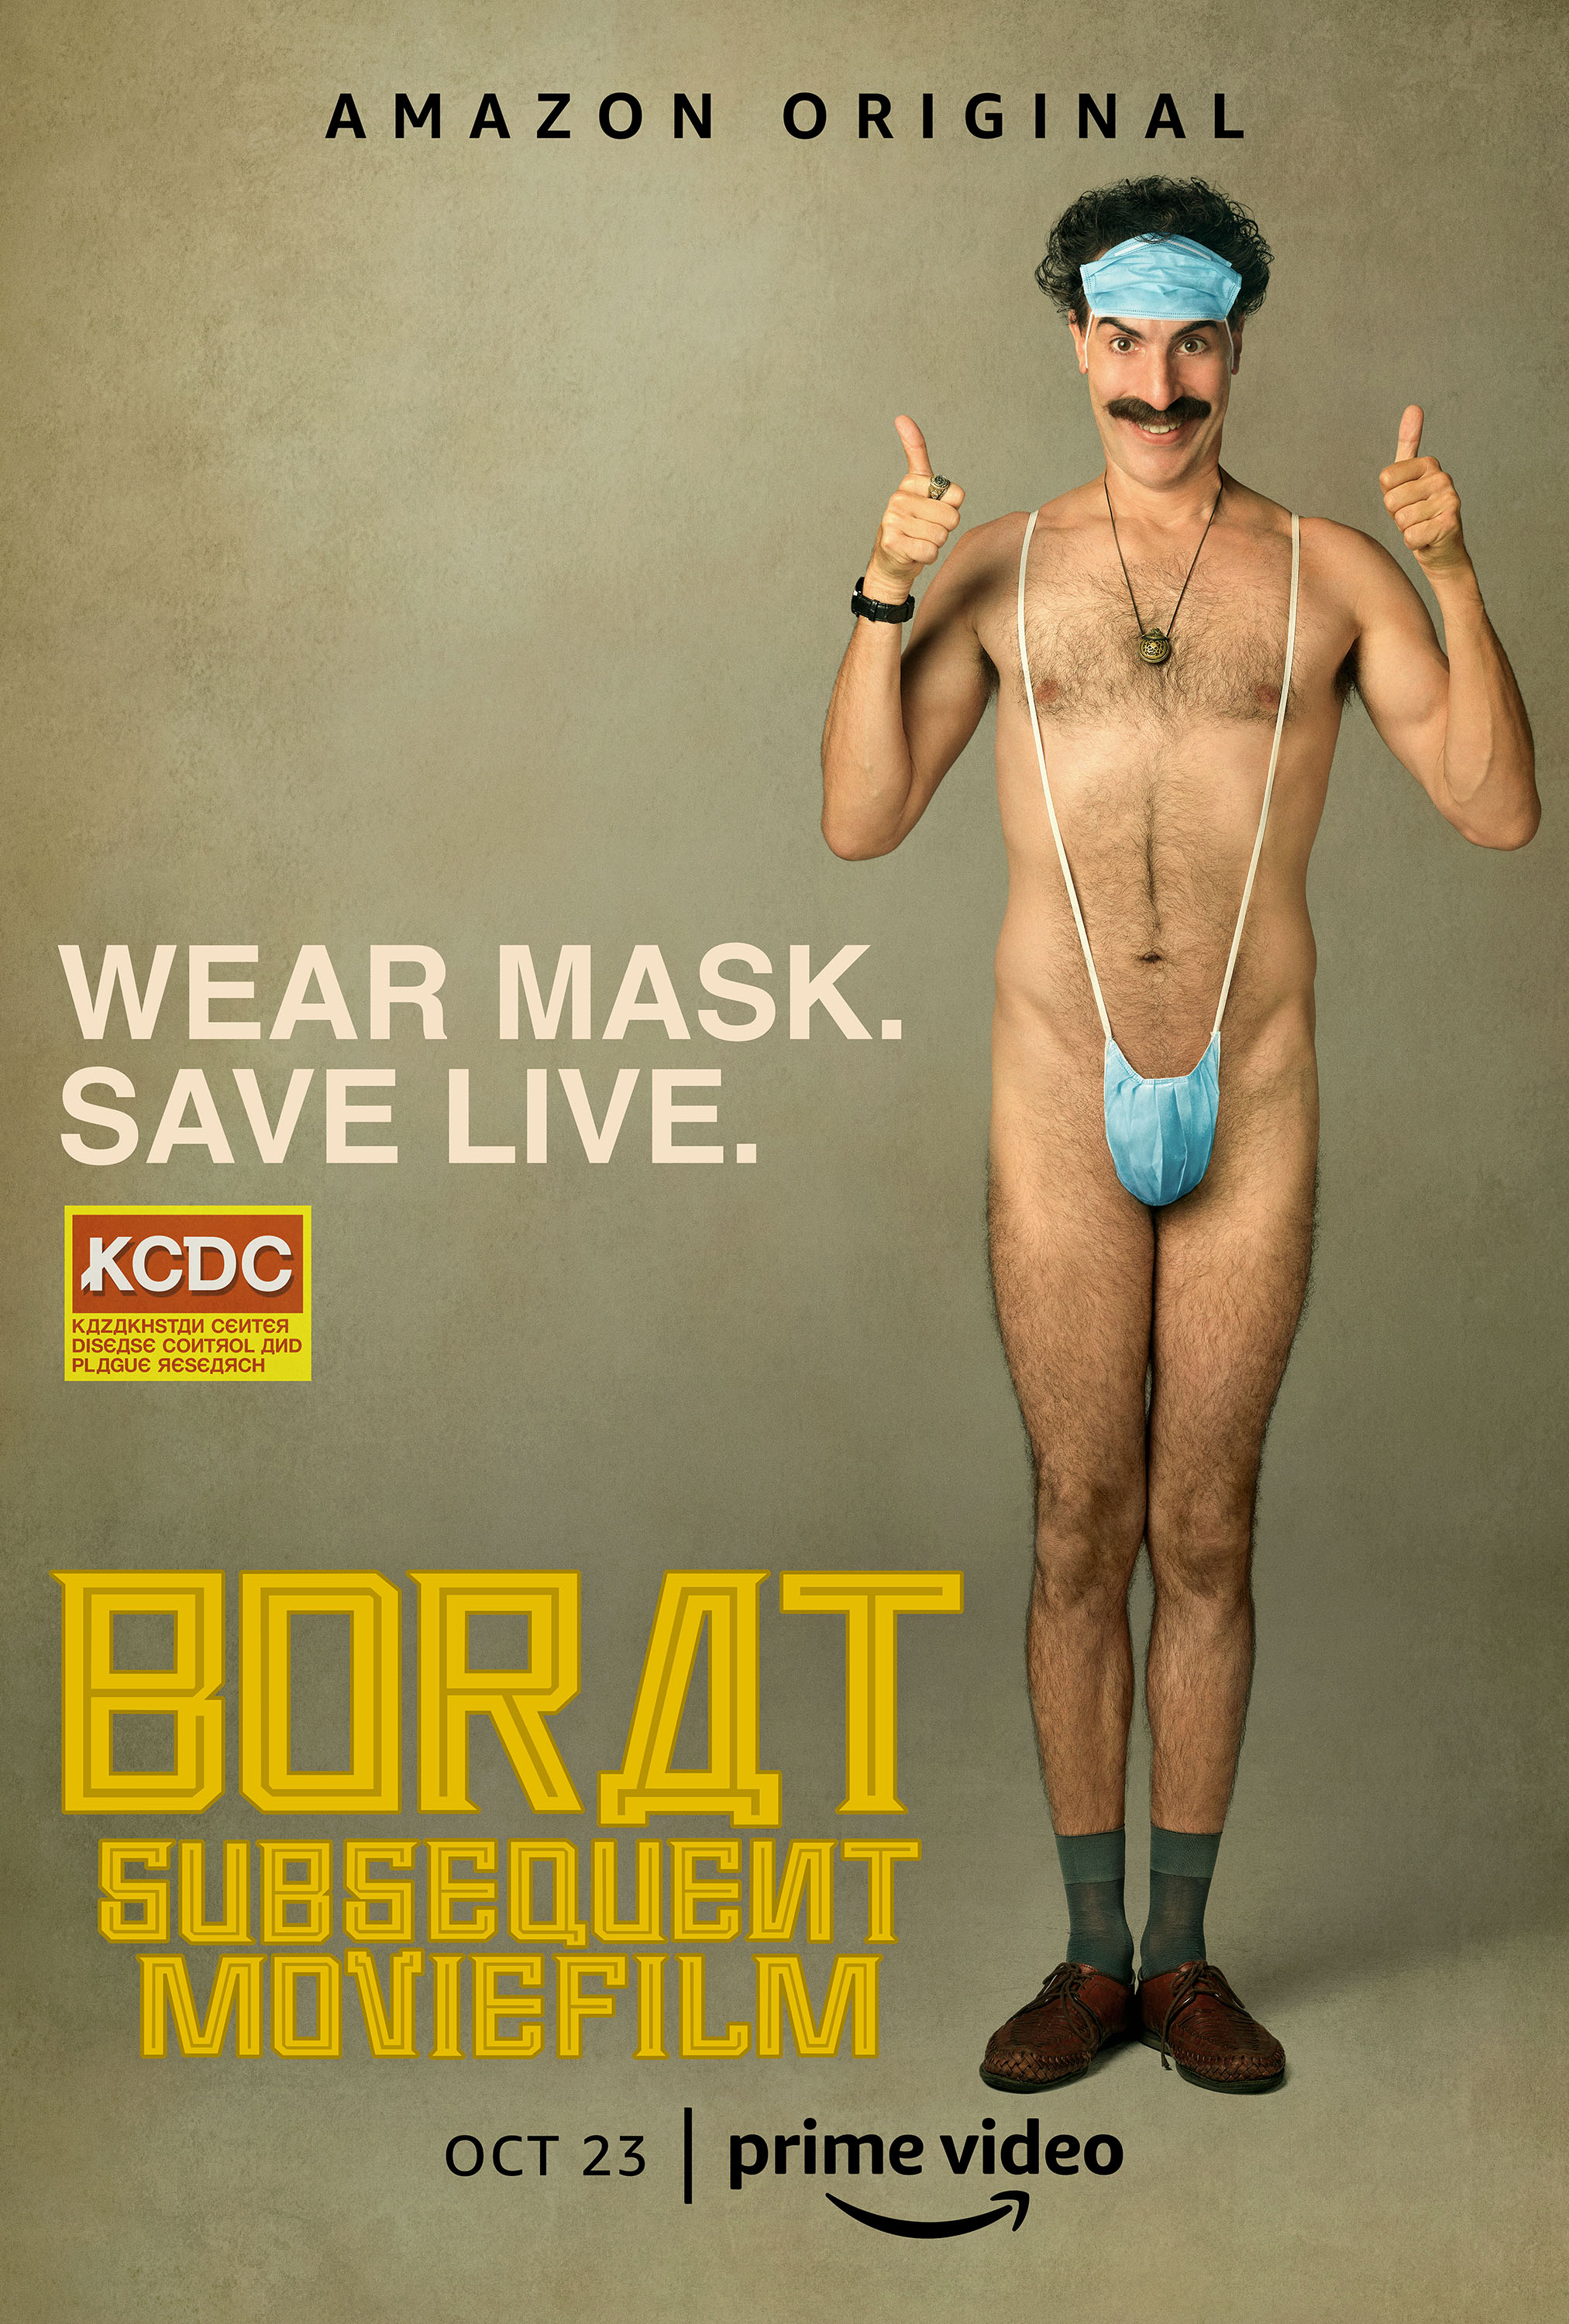 Promotional poster for BORAT SUBSEQUENT MOVIEFILM